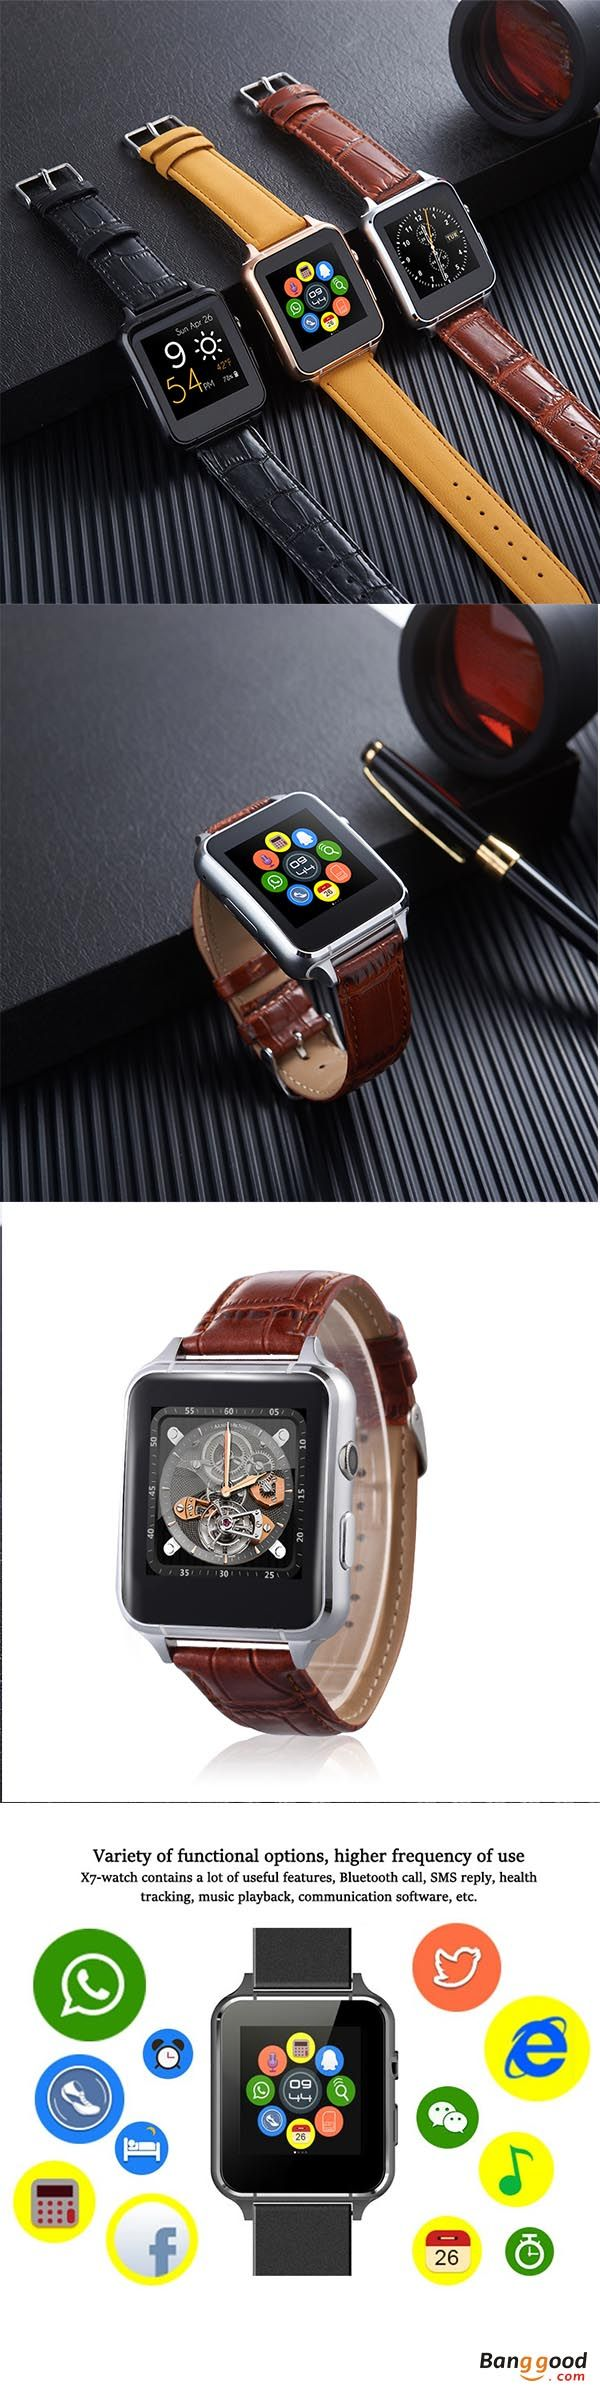 US$26.99 + Free shipping. Smart Watch Bracelet Bluetooth Pedometer Sedentary Reminder Sleep Monitoring Anti-lost Remote Camera Time Weather Music Synchronous. Colors: Gold, Black, Brown. Click for more!